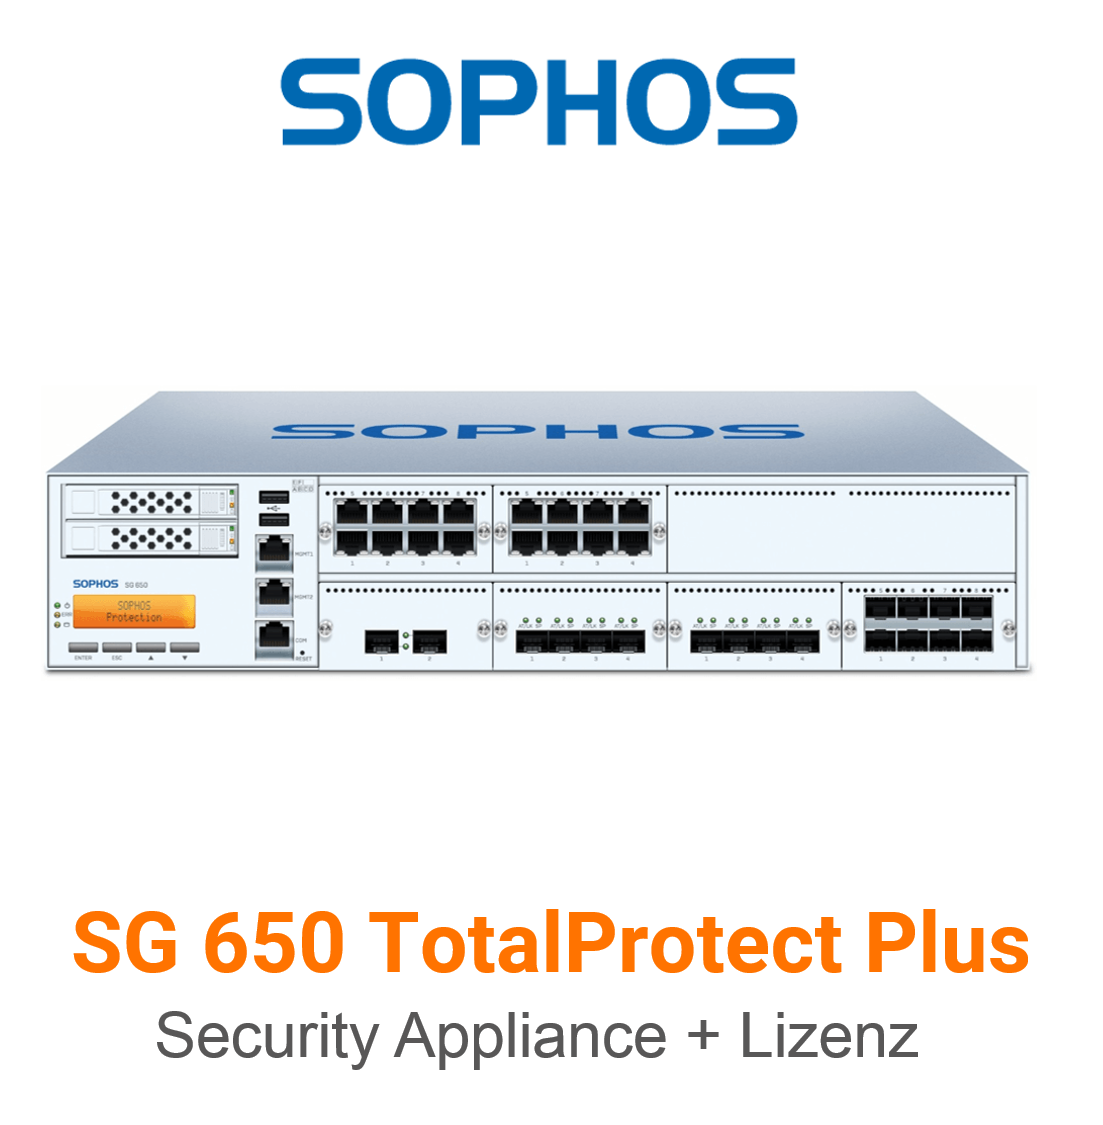 Sophos SG 650 TotalProtect Plus Bundle (Hardware + Lizenz)